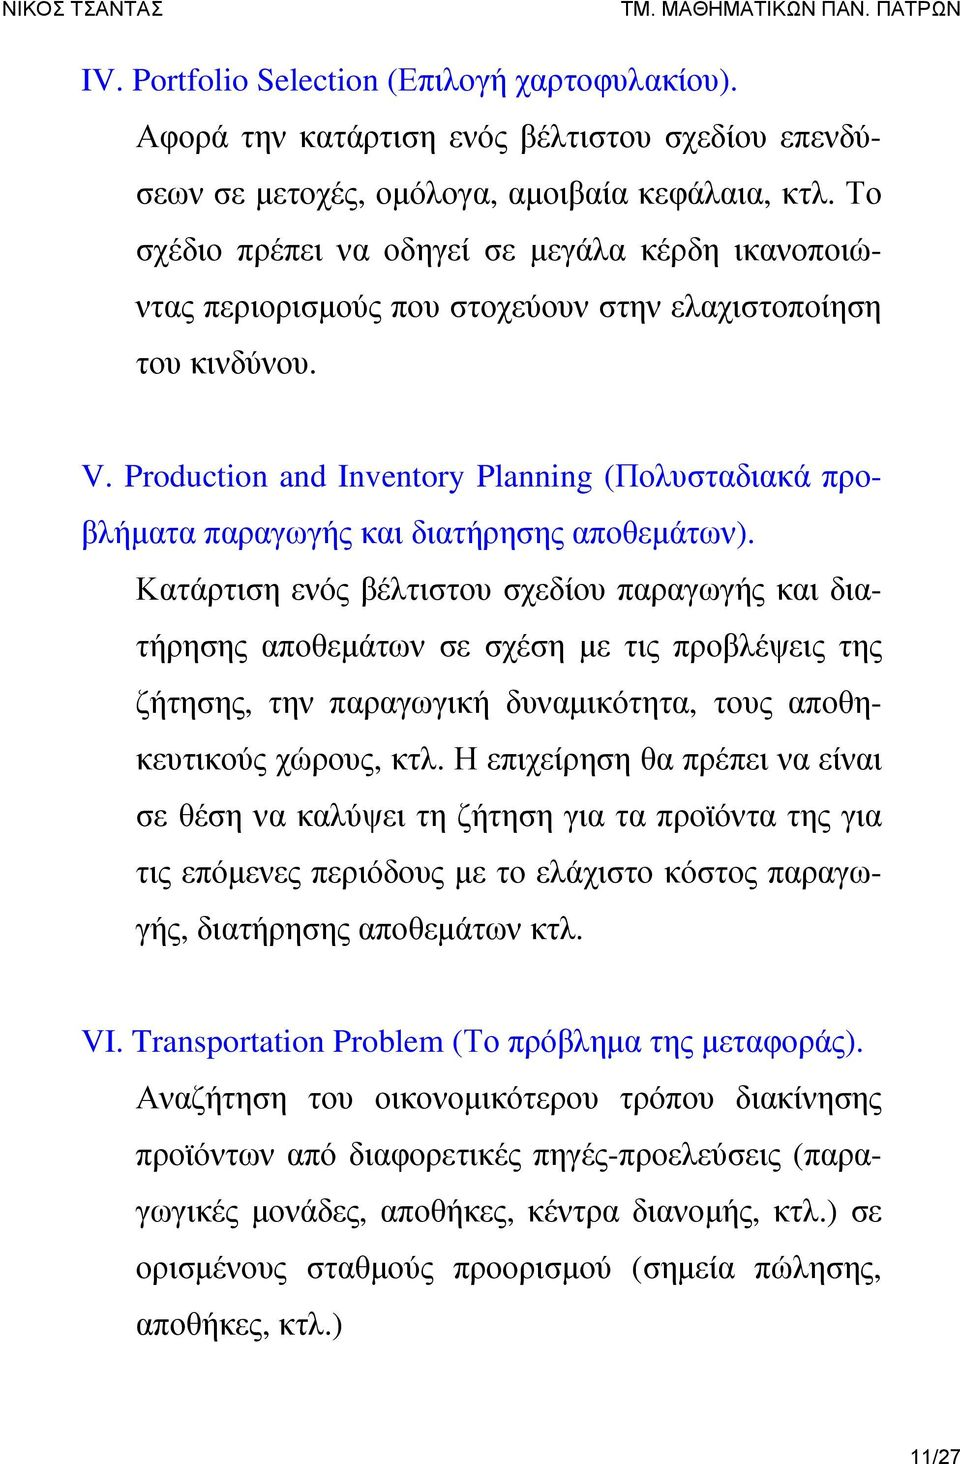 Production and Inventory Planning (Πολυσταδιακά προβλήματα παραγωγής και διατήρησης αποθεμάτων).